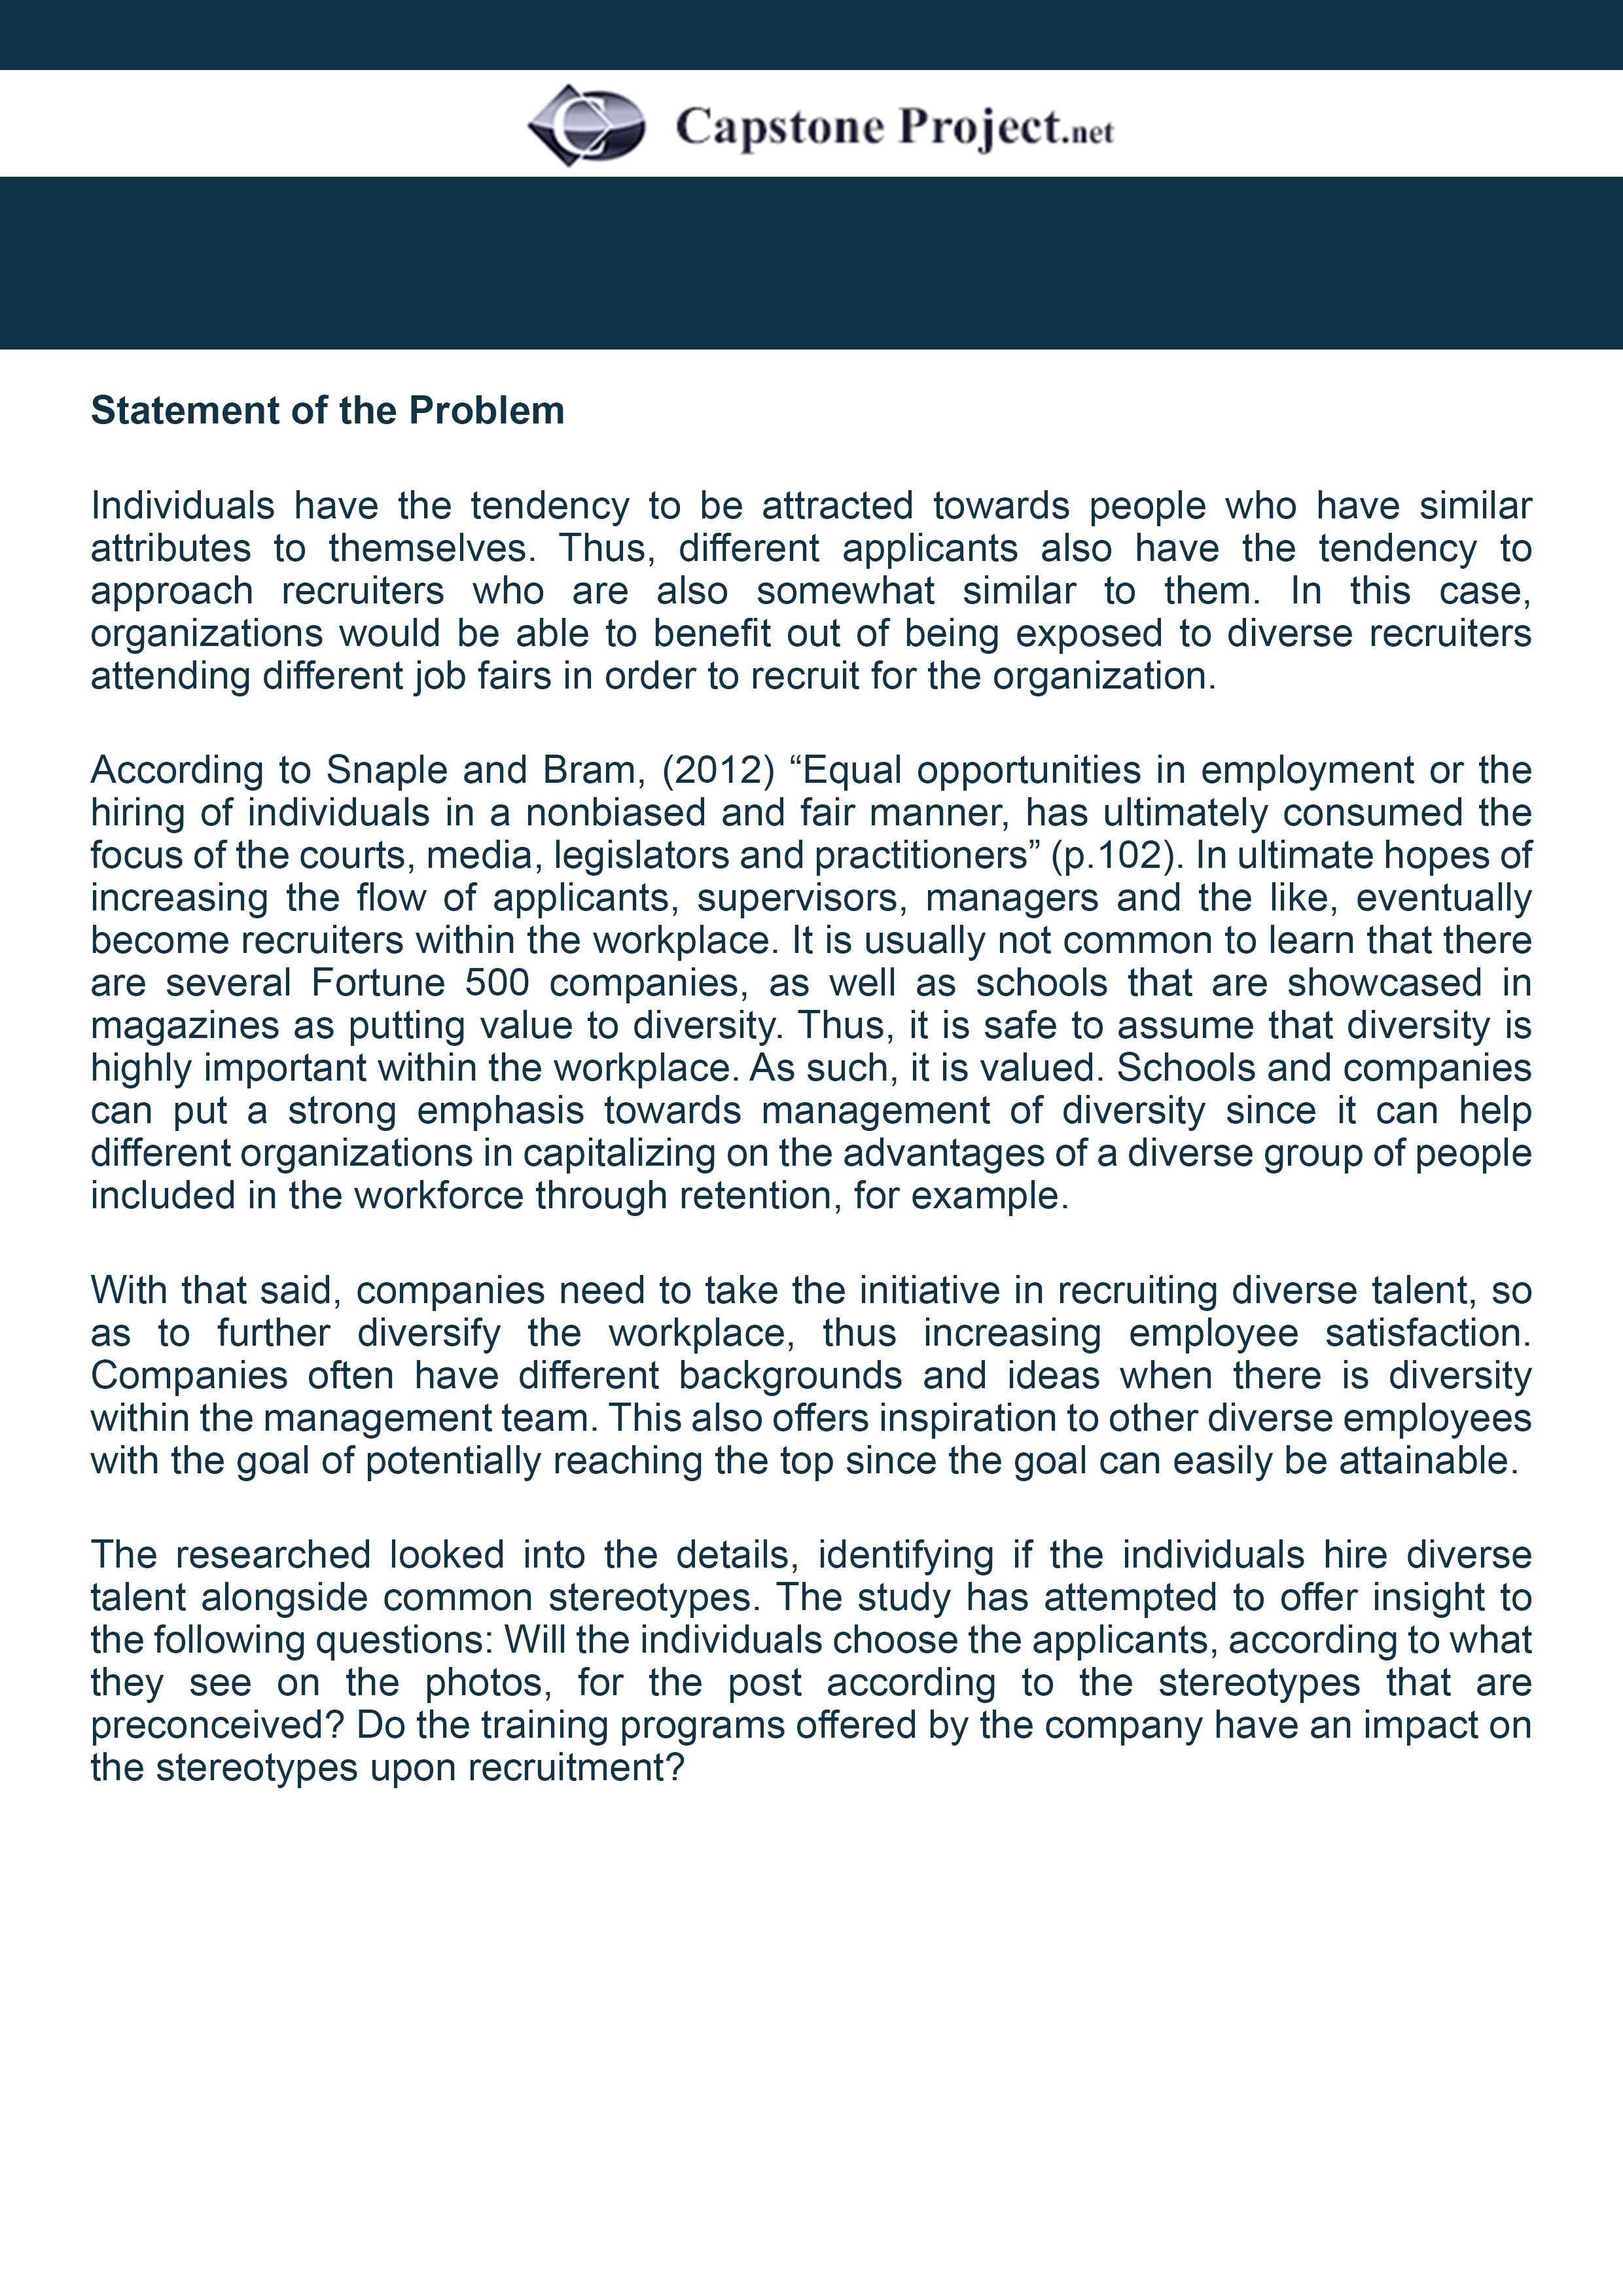 capstone paper statement of the problem sample